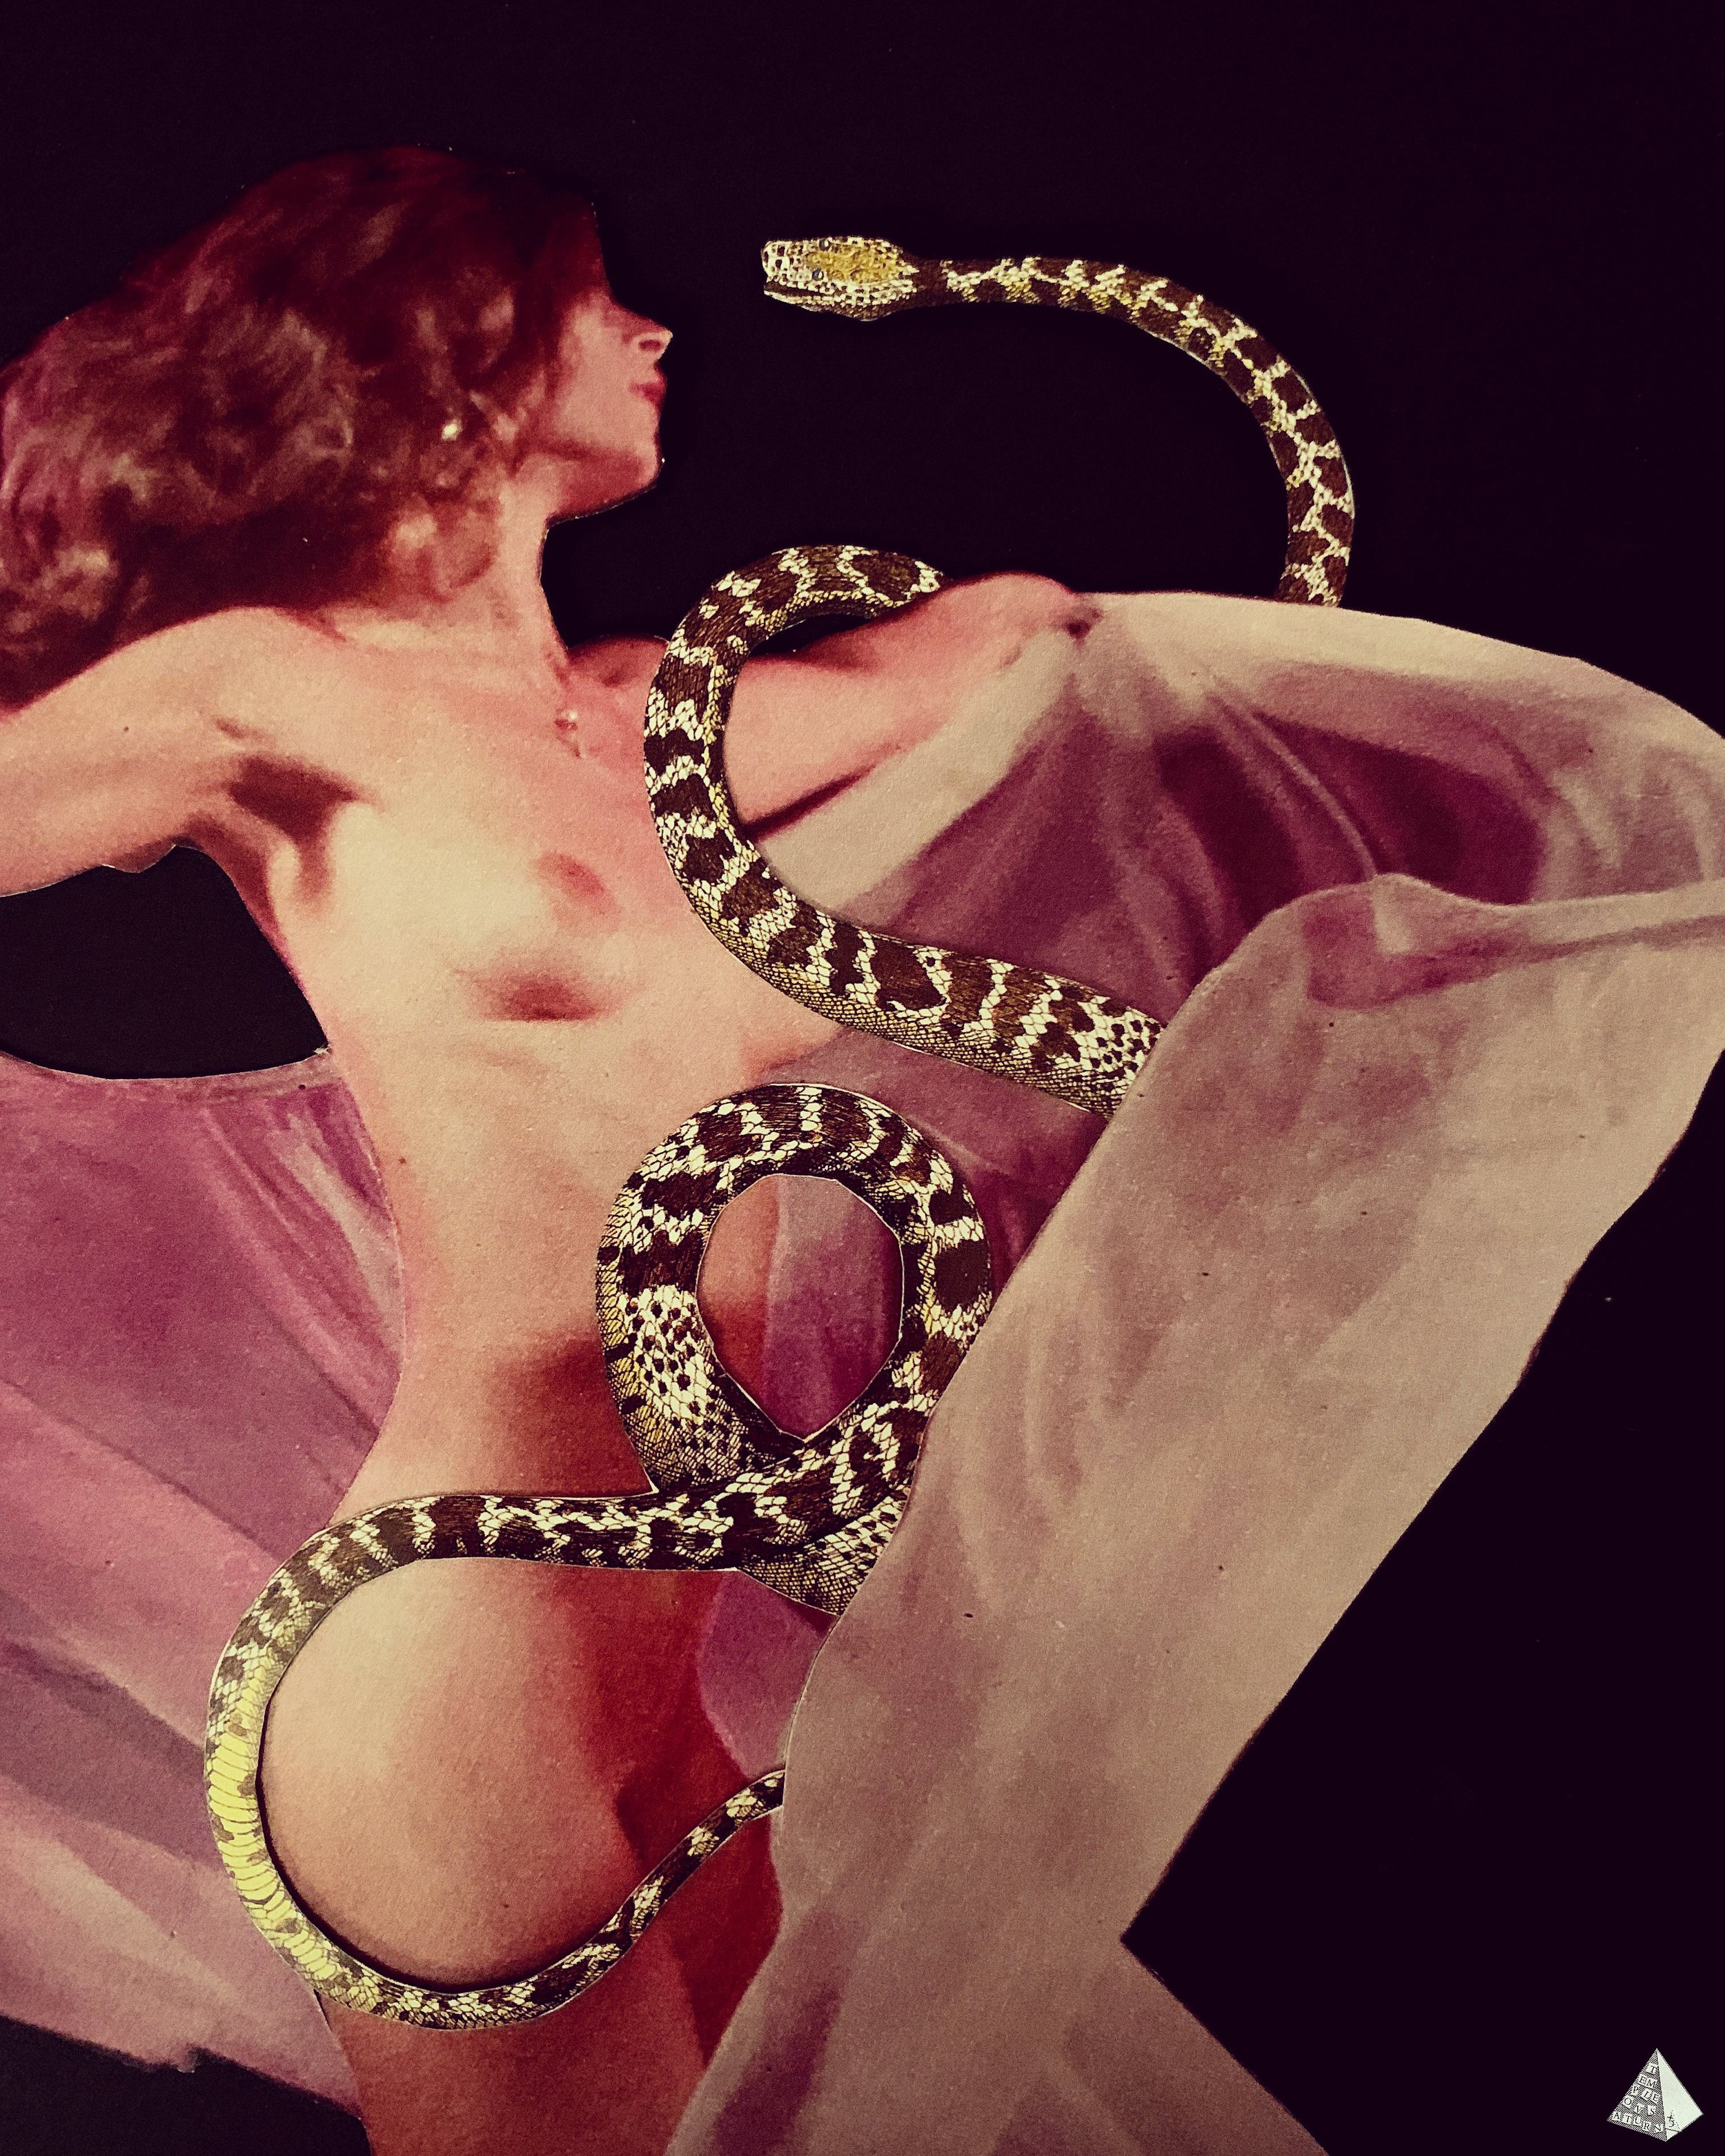 Les Fleurs du Mal: Le Serpent qui danse by Joan Pope (Temple ov Saturn)